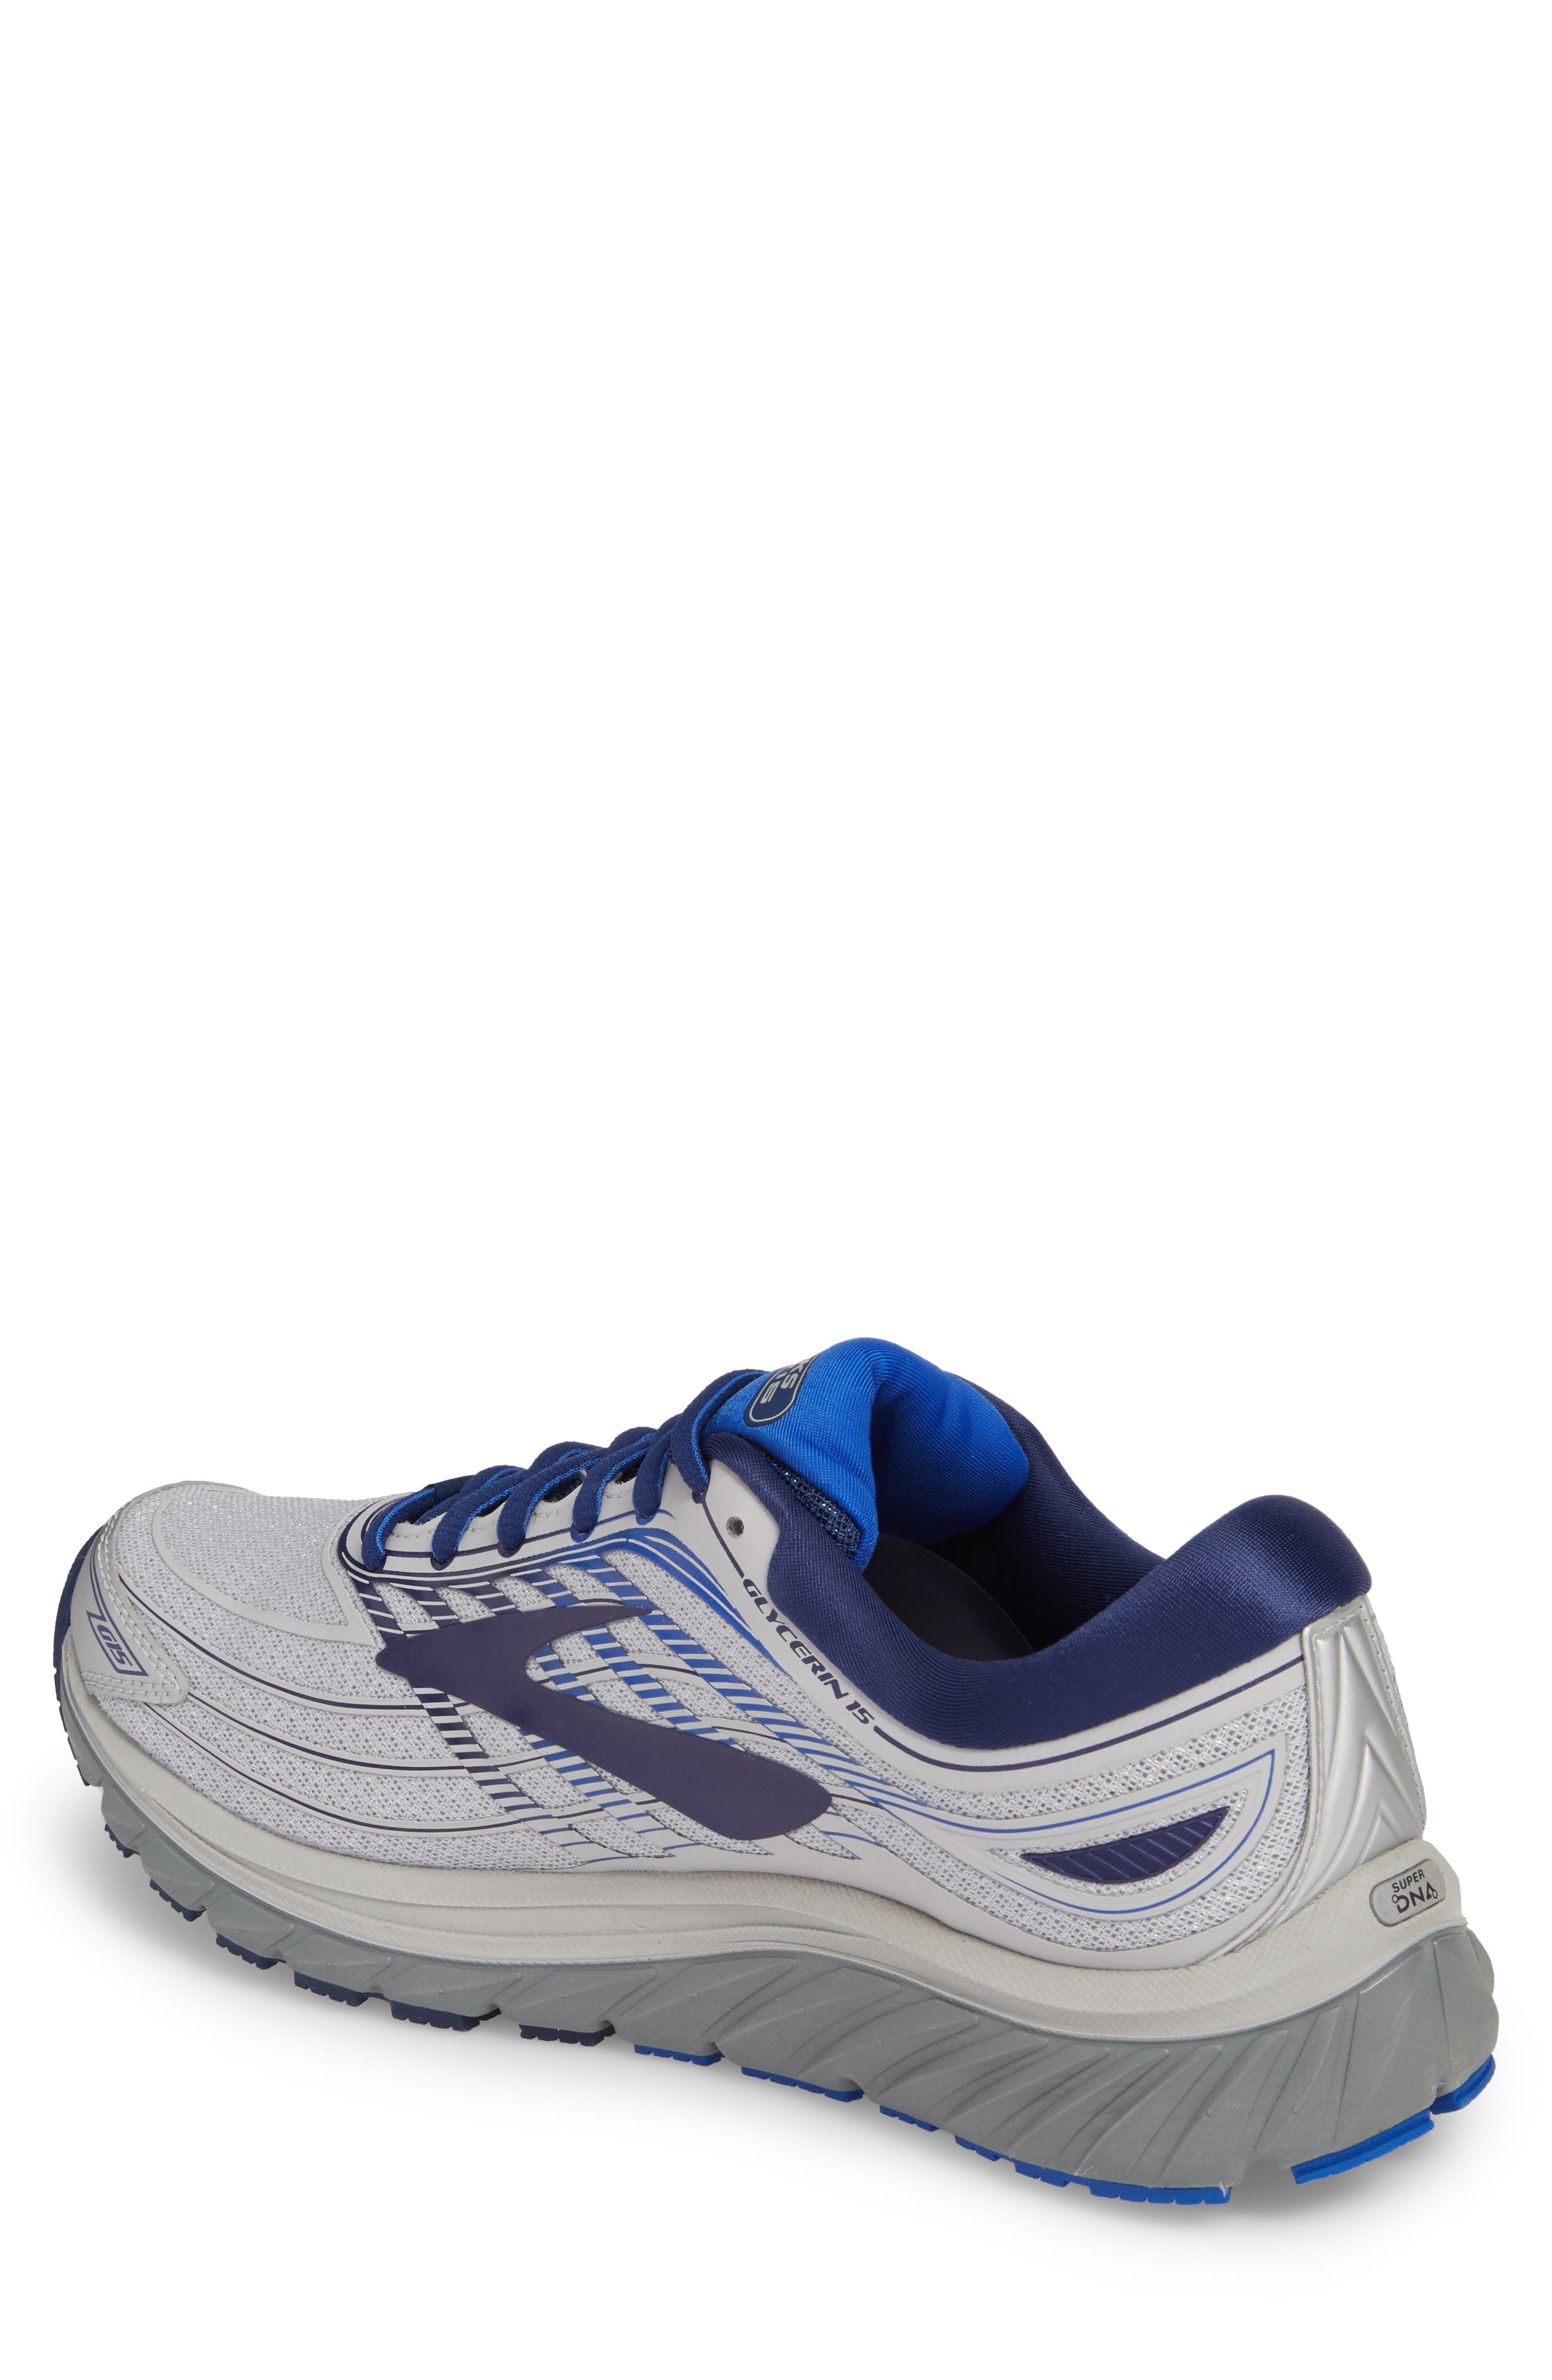 Glycerin 15 Running Shoe,                             Alternate thumbnail 2, color,                             036